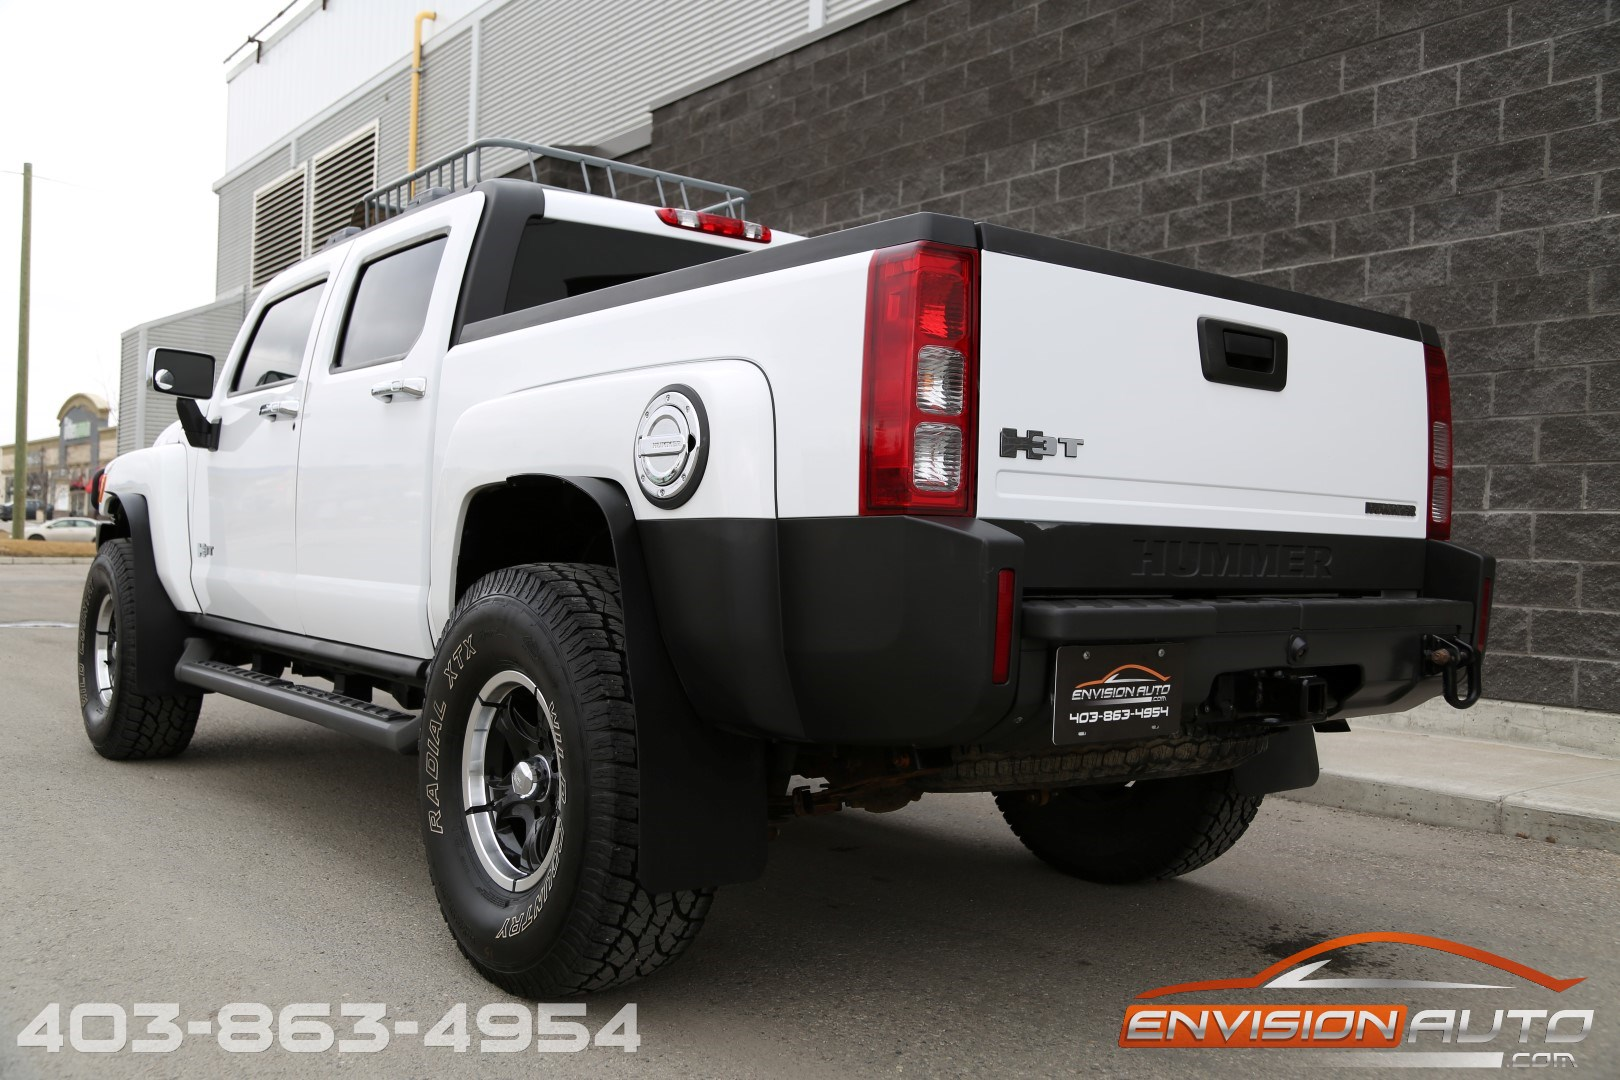 2010 H3t Hummer Truck Aftermarket Extras Envision